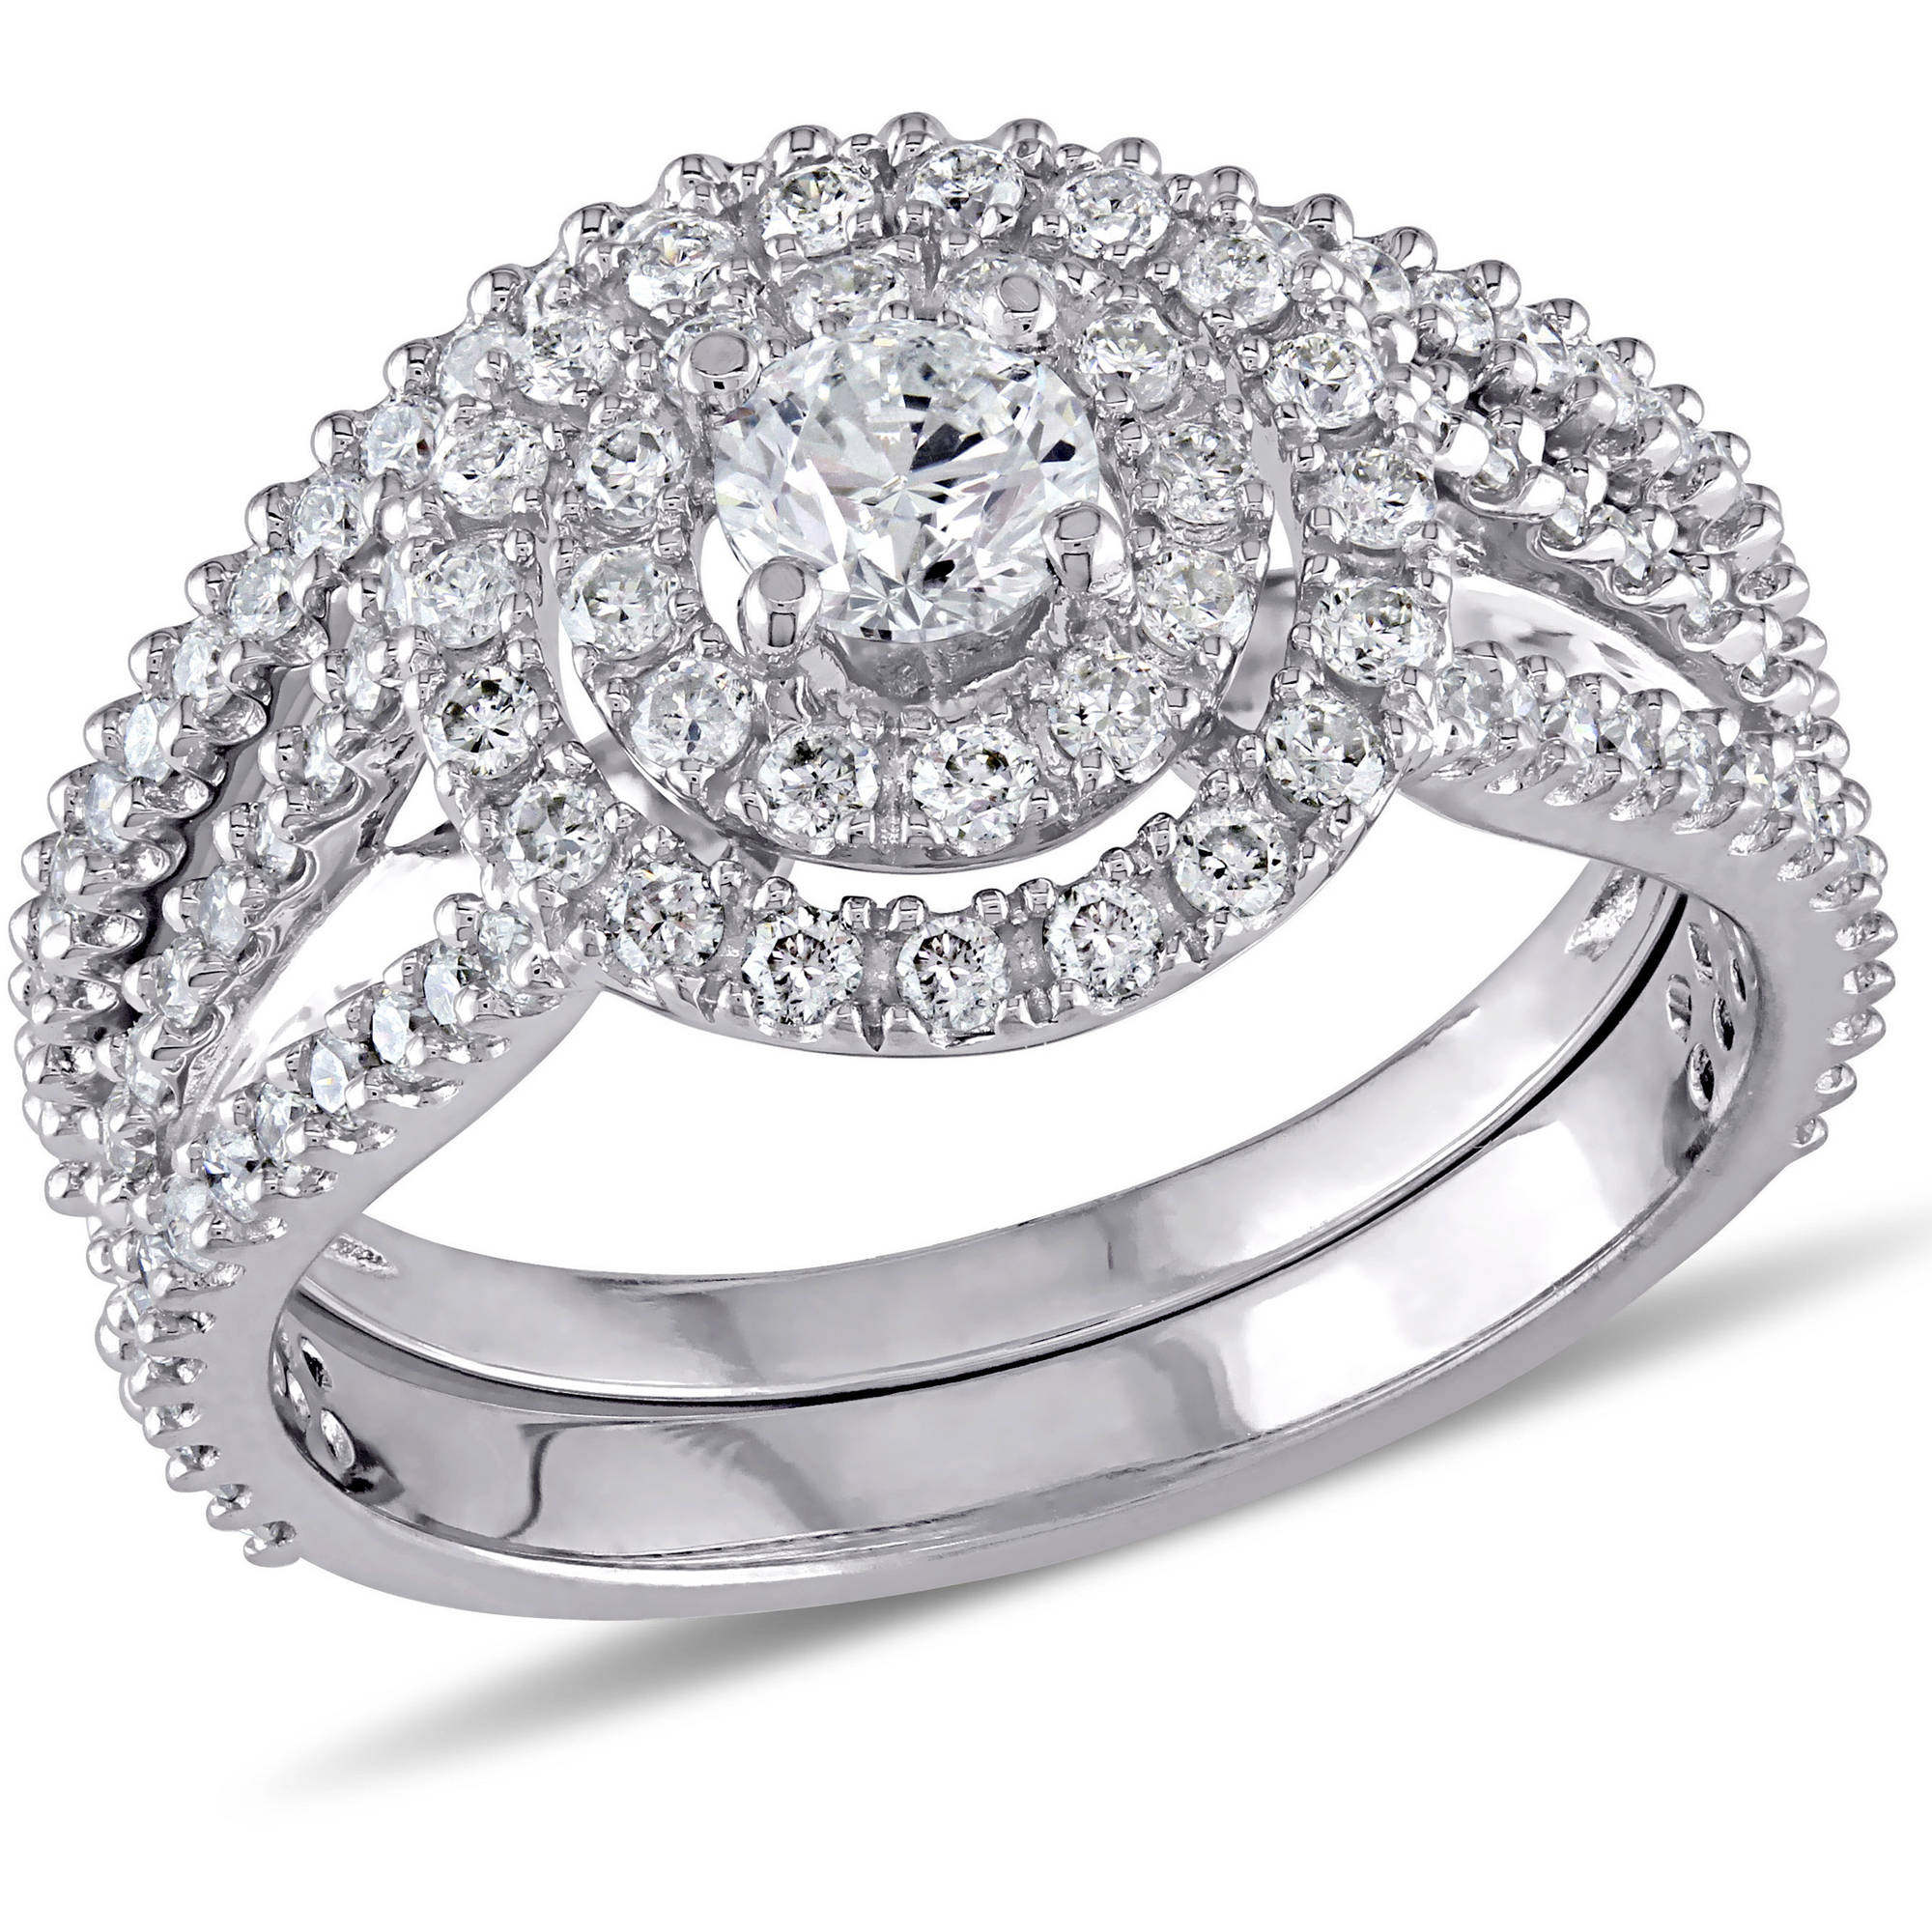 Miabella 1-1/5 Carat T.W. Diamond 14kt White Gold Double Halo Bridal Set